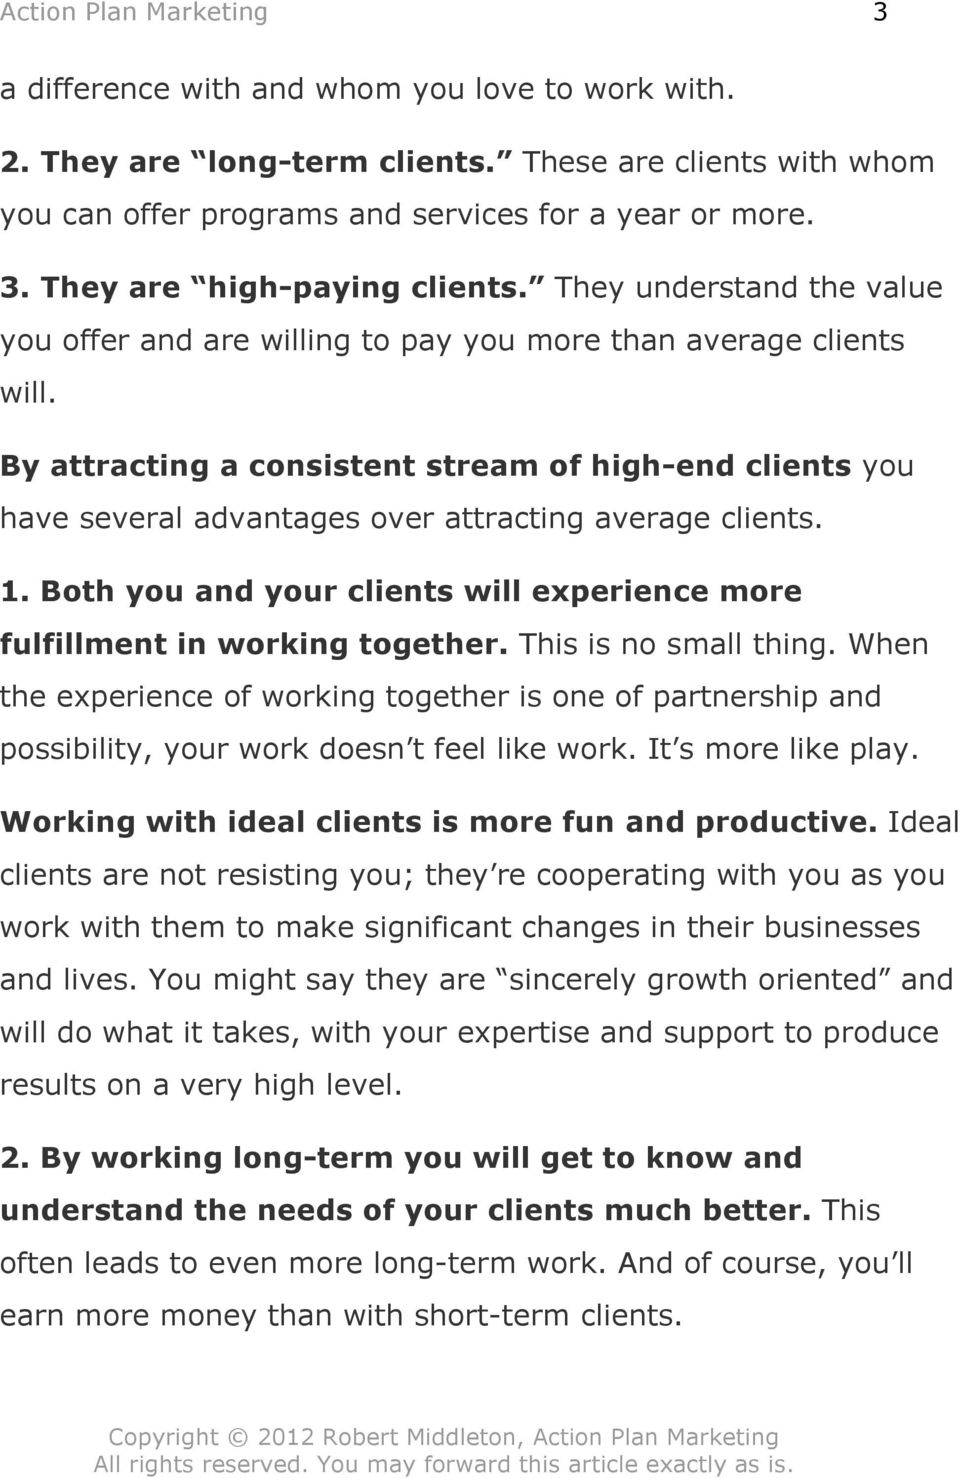 By attracting a consistent stream of high-end clients you have several advantages over attracting average clients. 1. Both you and your clients will experience more fulfillment in working together.